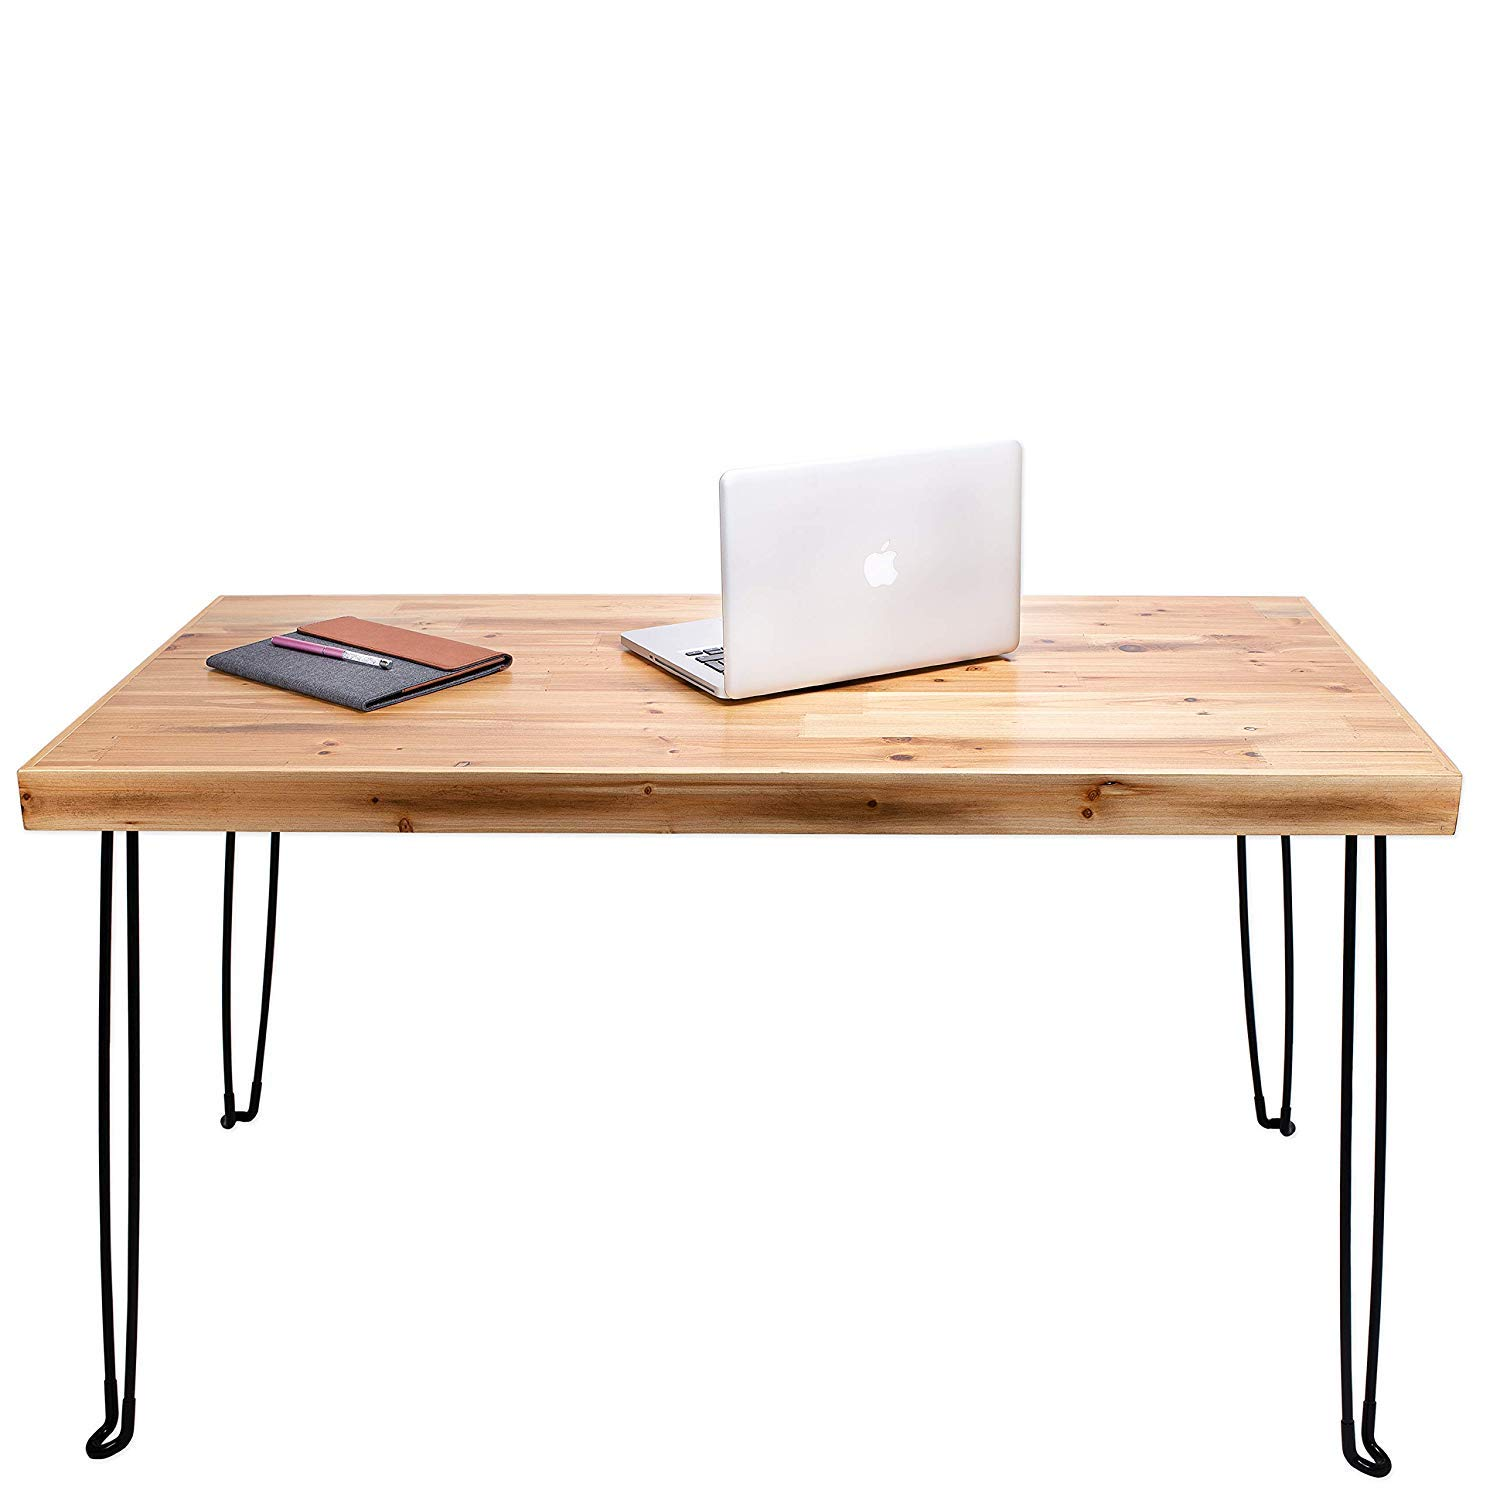 Folding Wood Metal Desk 47'' | Small Lightweight Portable Modern Table for Writing Computer Laptop | Industrial Rustic Style Foldable Workstation with Hairpin Legs | No Assembly Required | By Sleekform by Sleekform